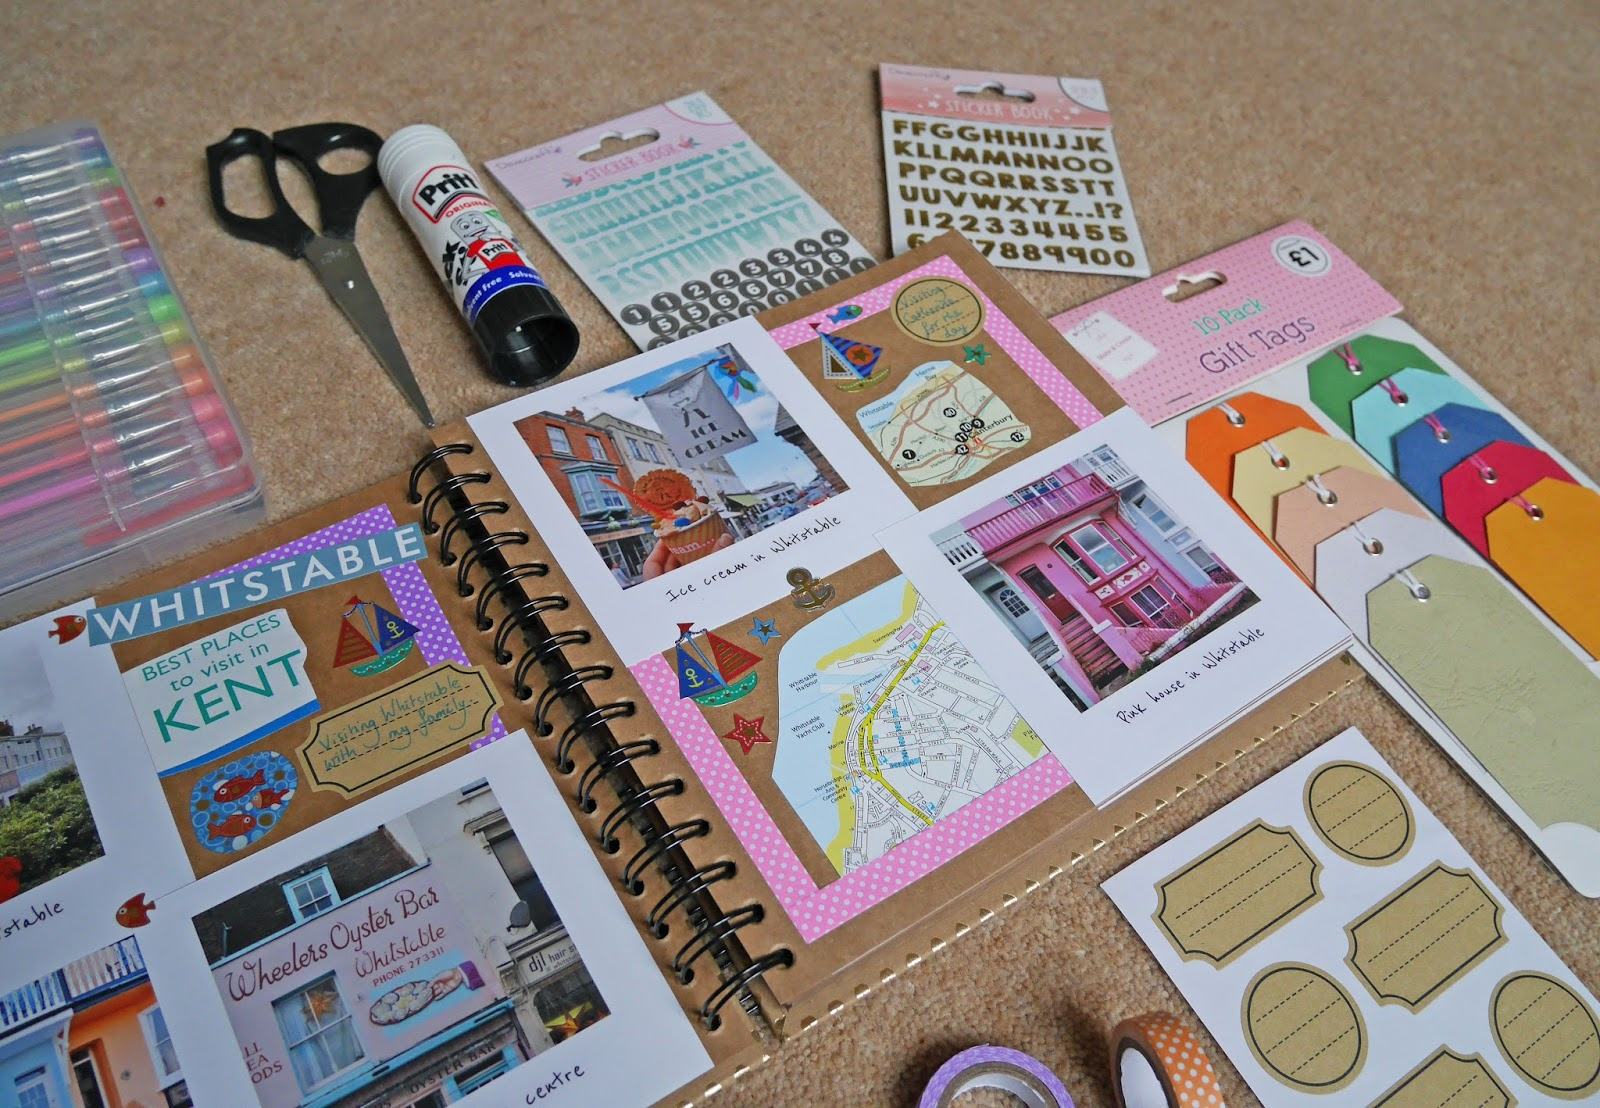 Scrapbooking starter kit for beginners - luggage tags and labels